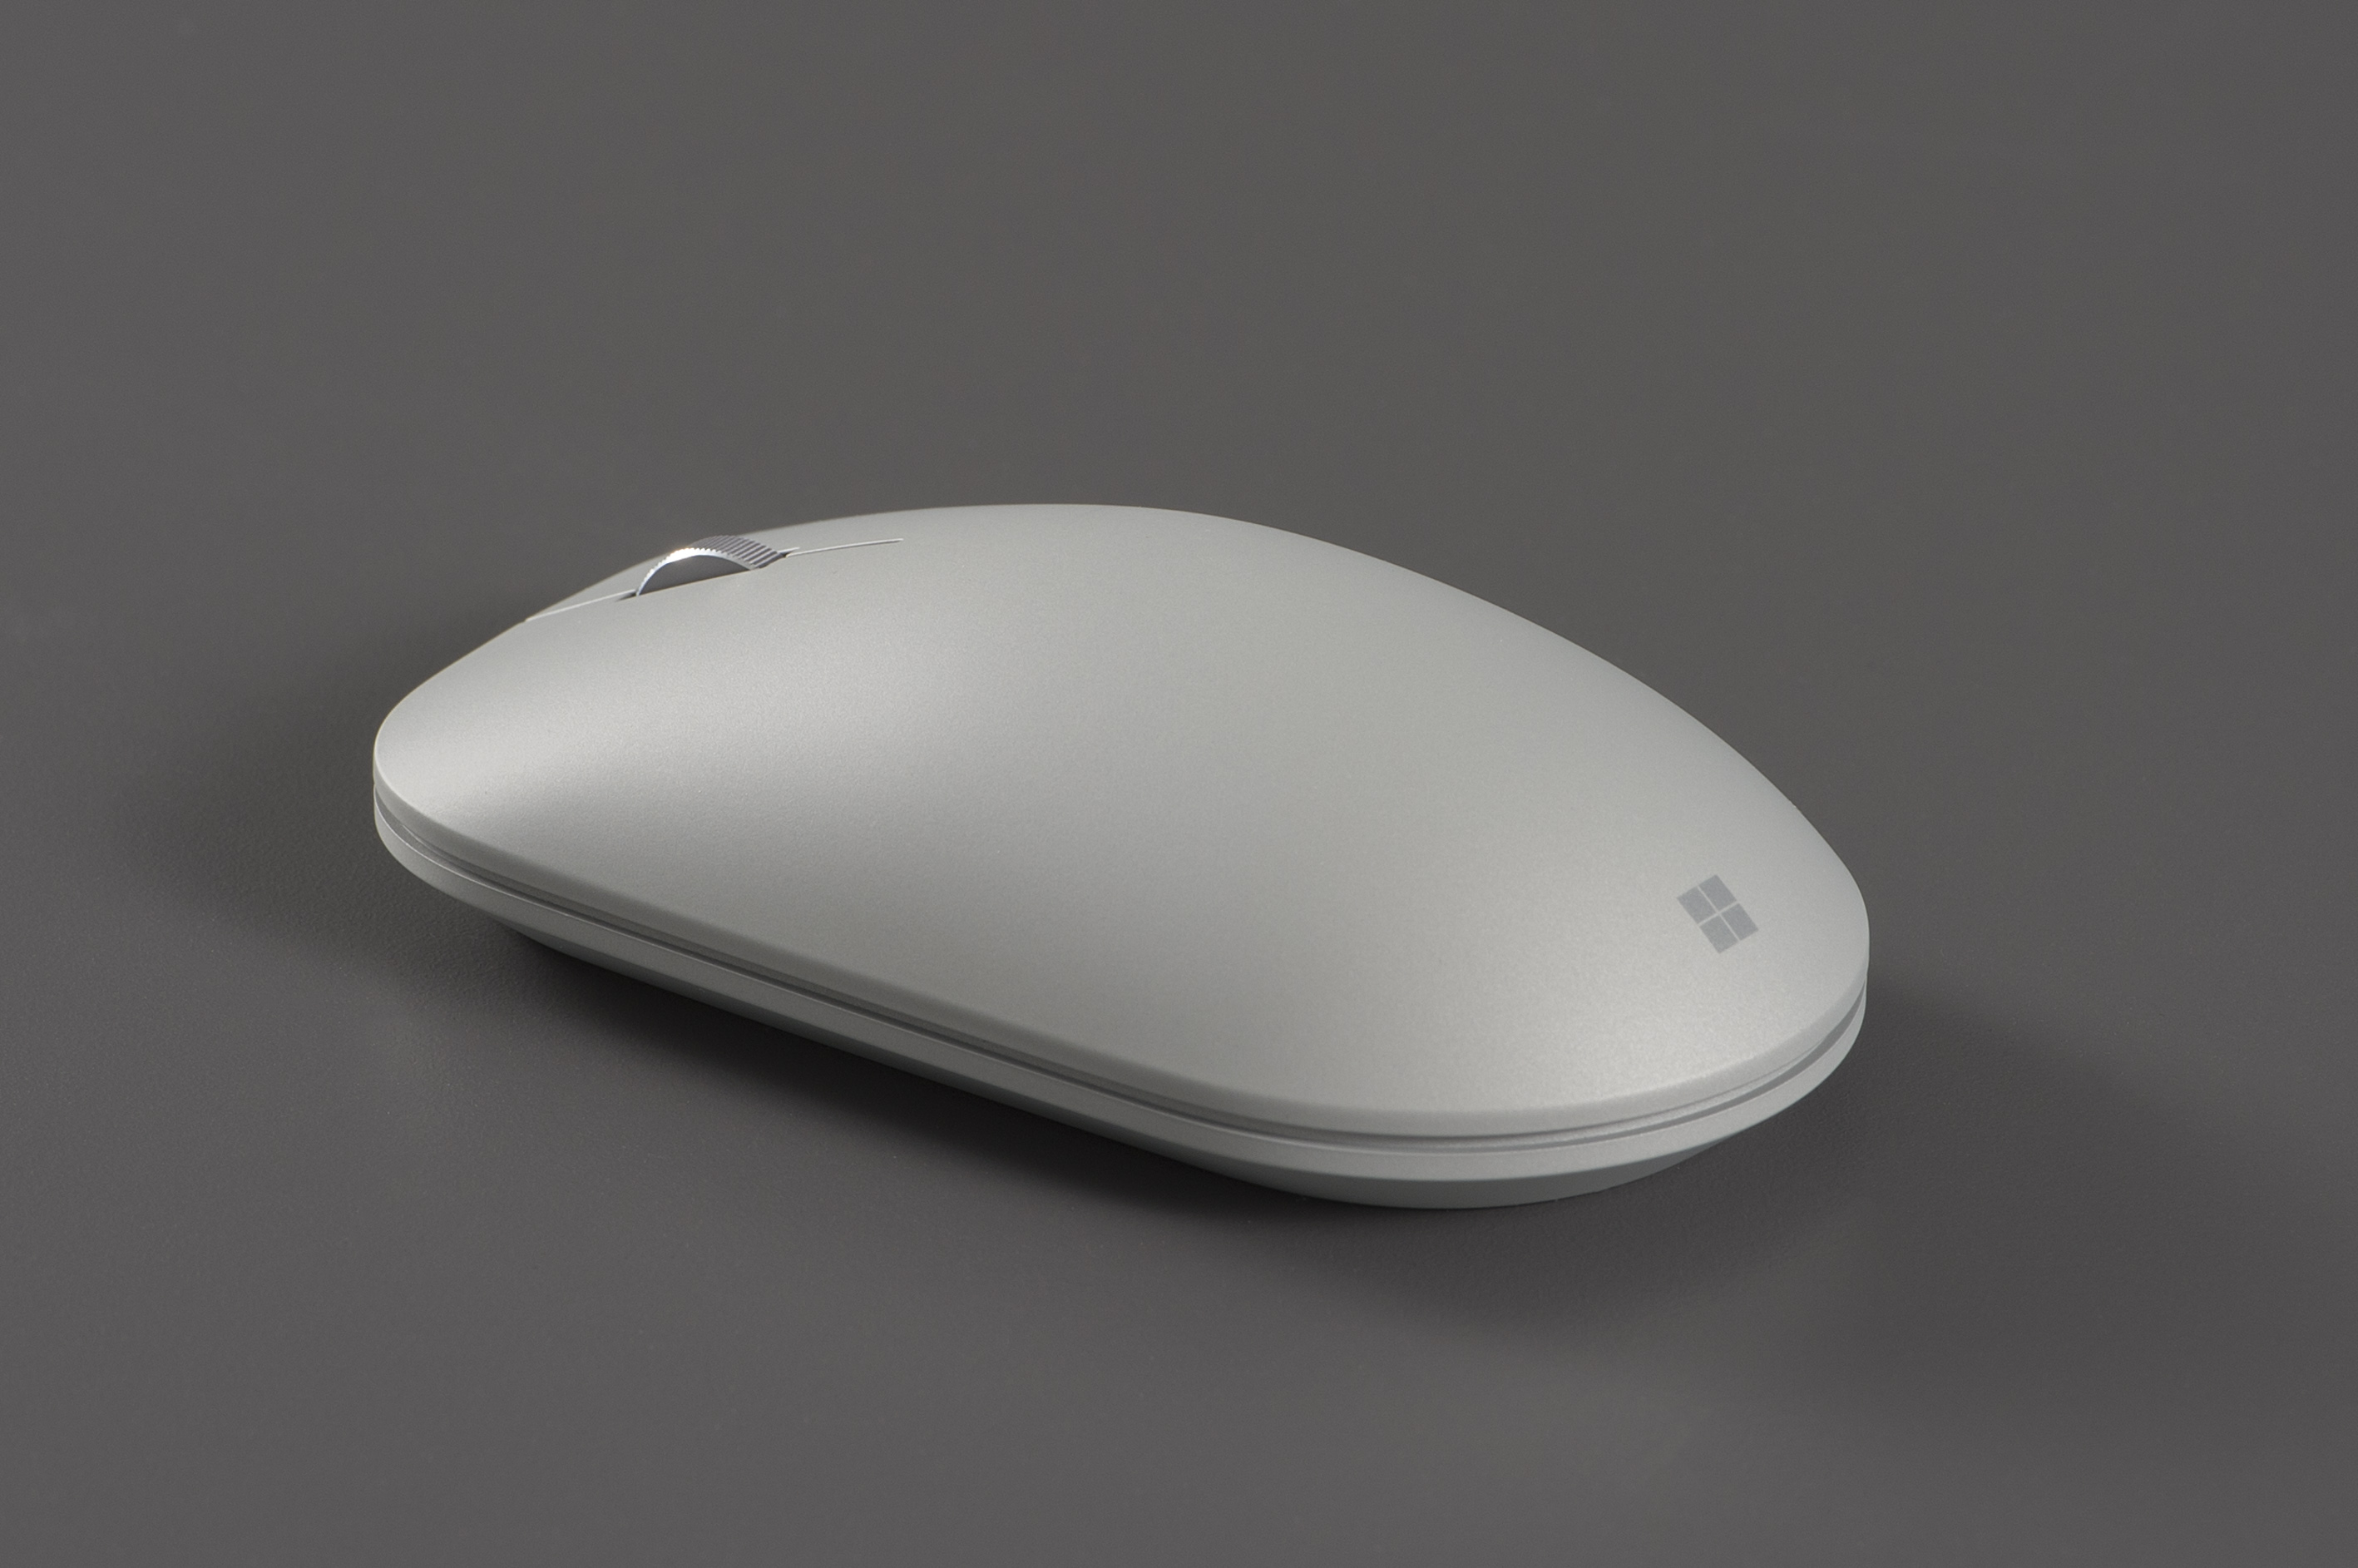 Microsoft_Surface Mouse